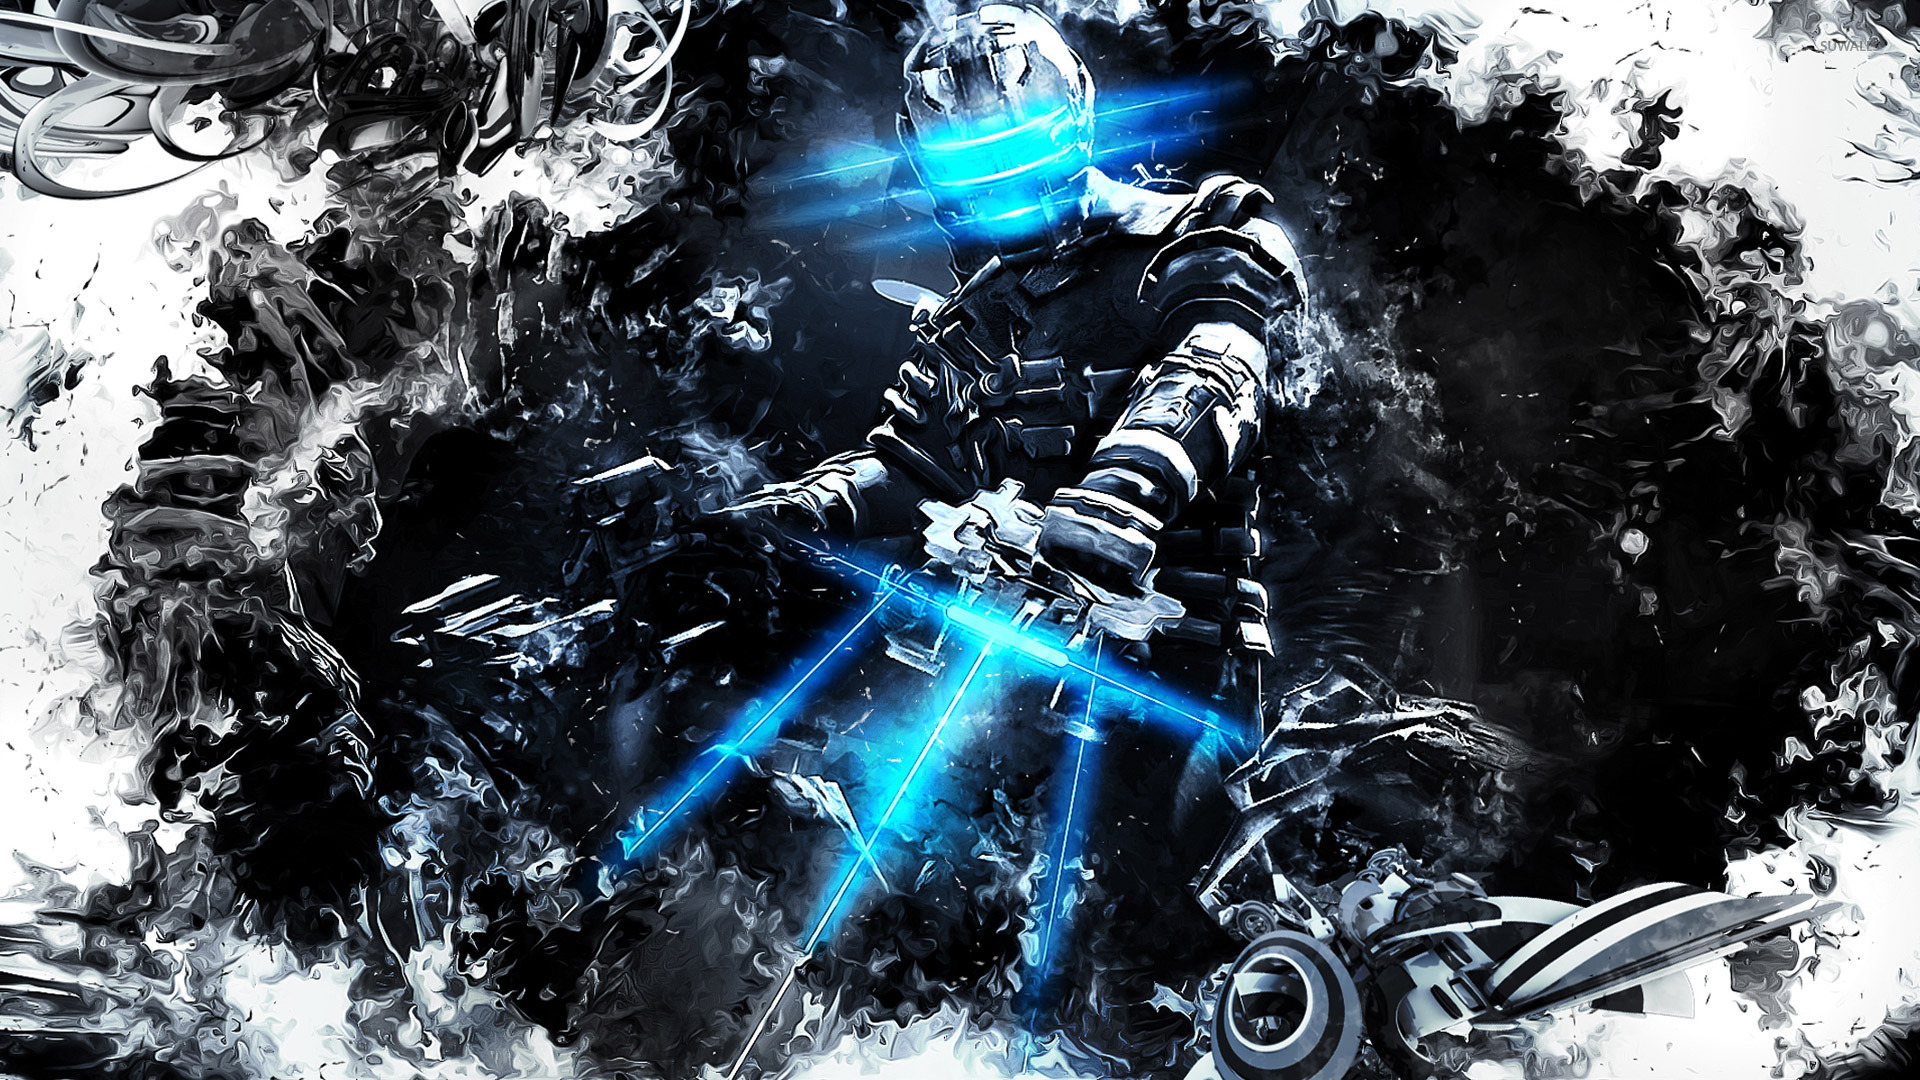 Dead Space 3 wallpaper   Game wallpapers   26840 1920x1080